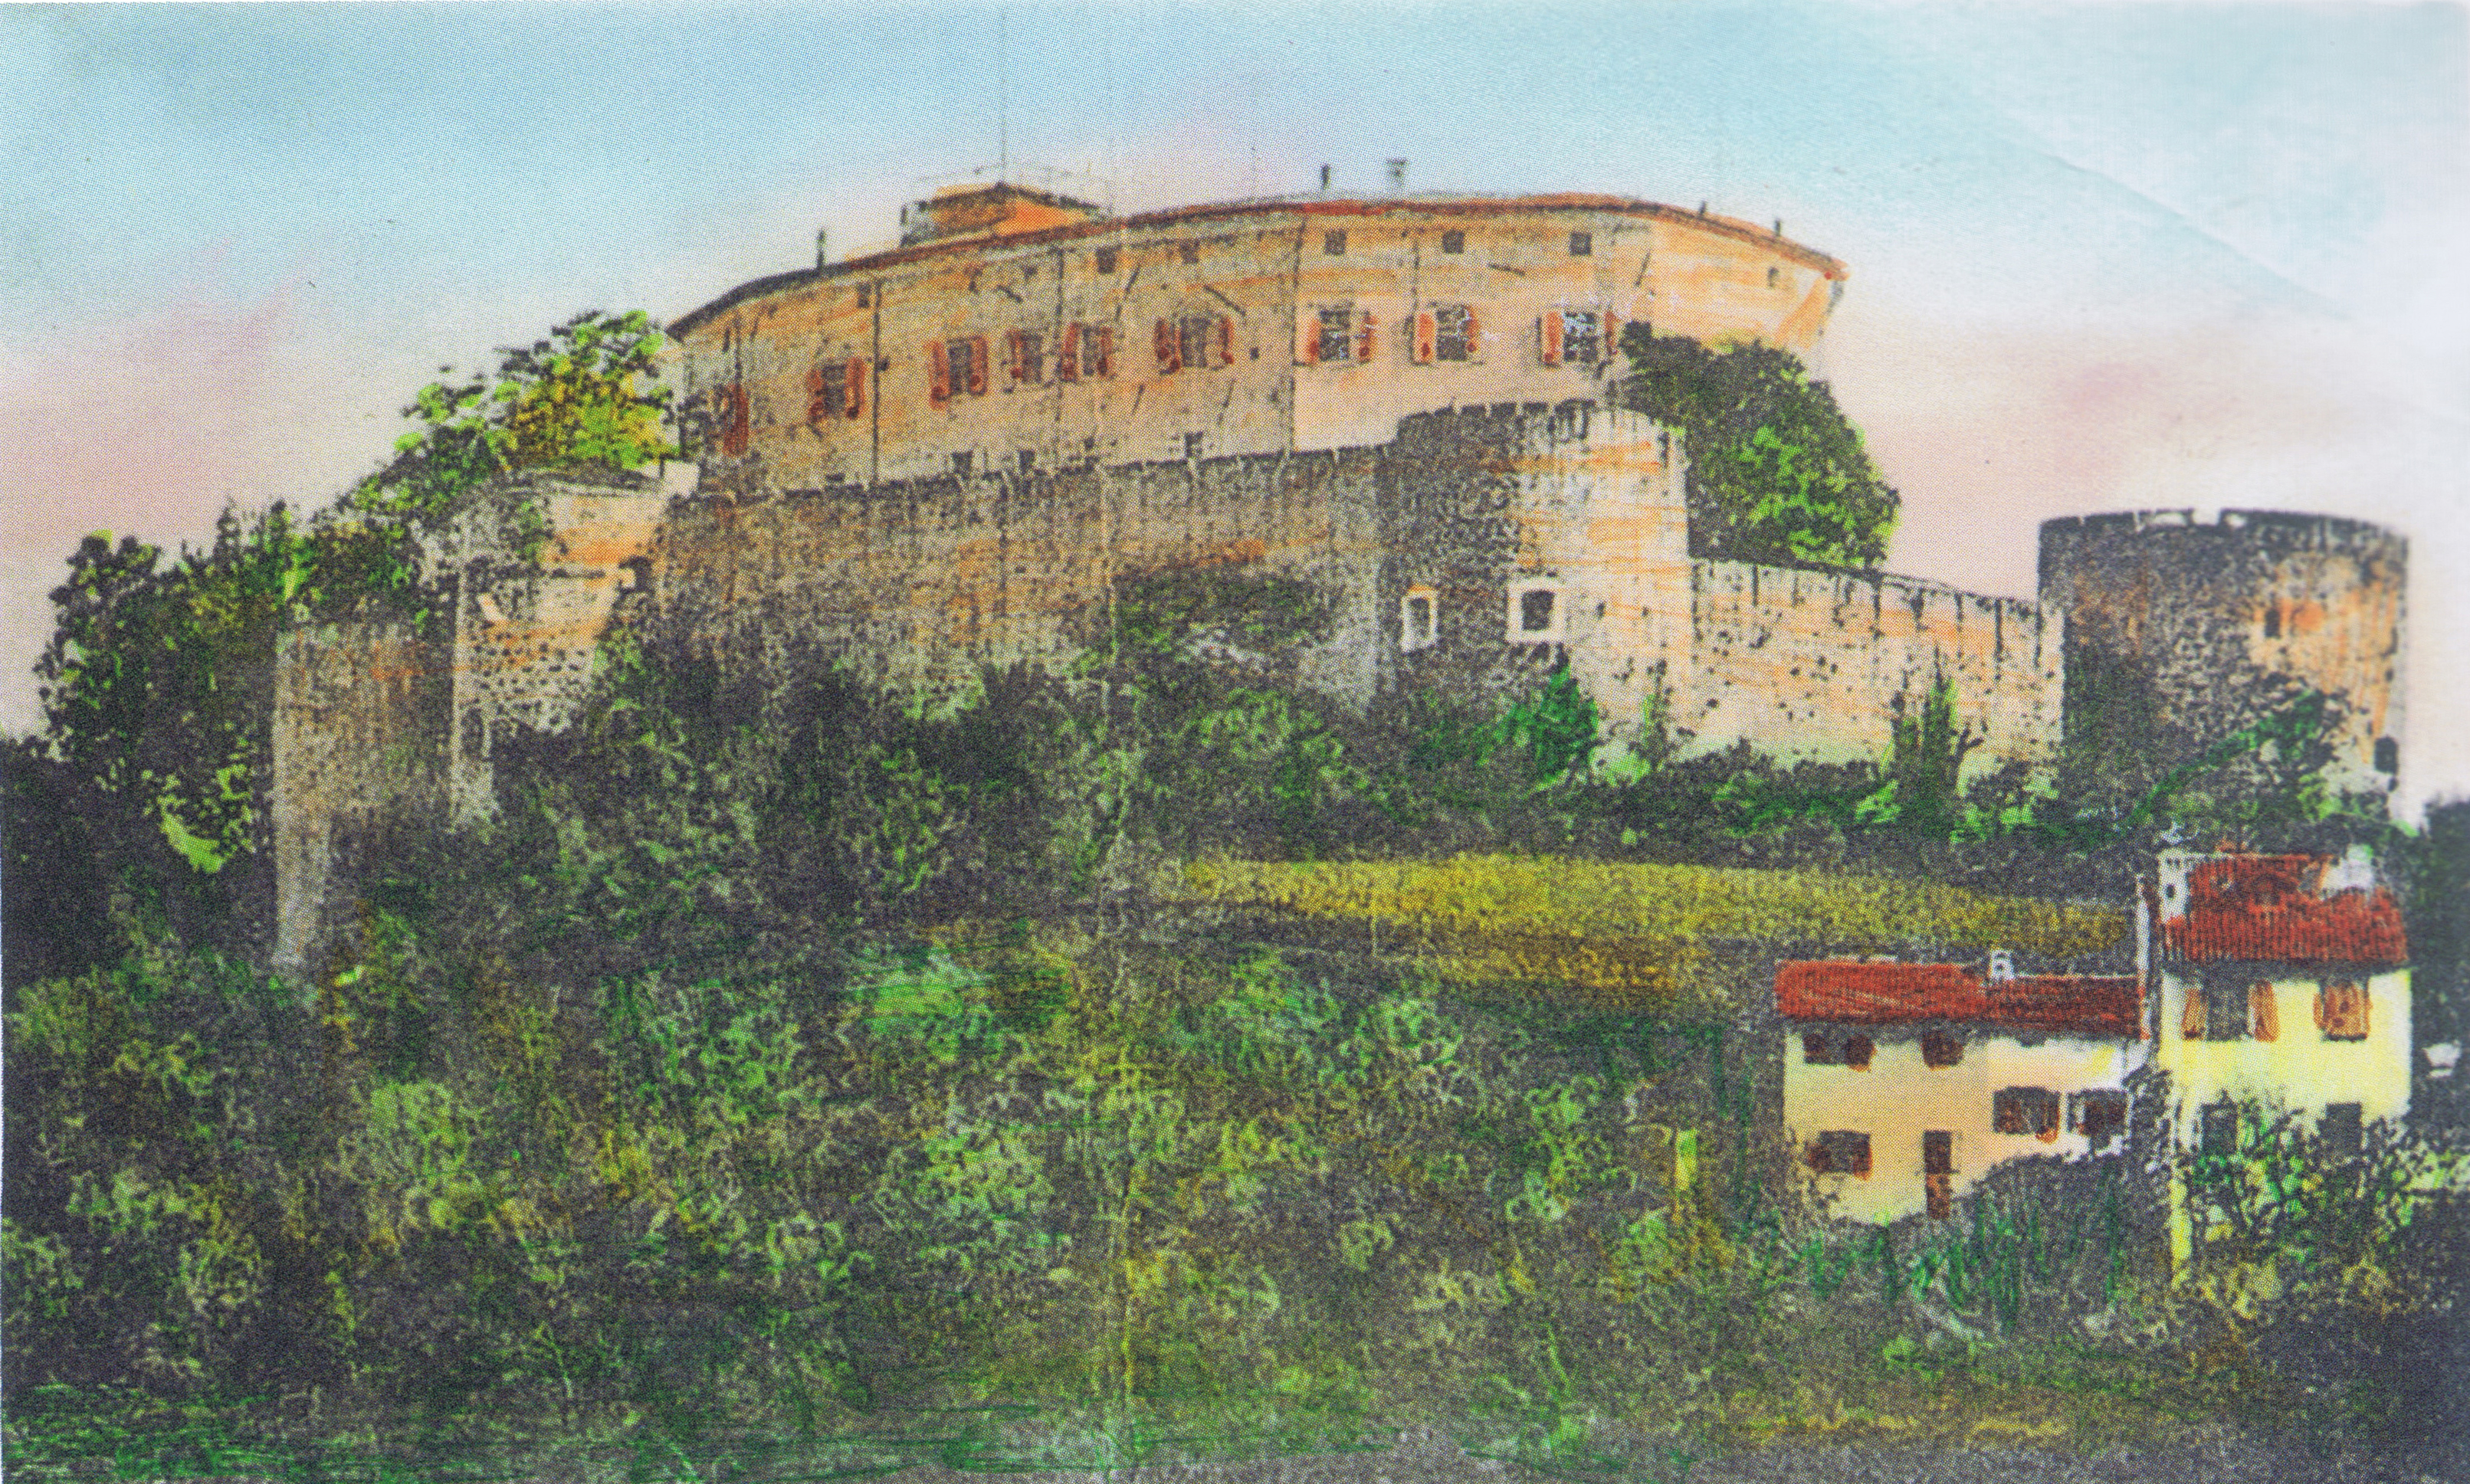 gorizia dating site The castle of gorizia, dating back to the 11th century, houses the museum of the middle ages in gorizia the museum features magnificently furnished rooms and displays an interesting collection of historical, artistic and archaeological items.